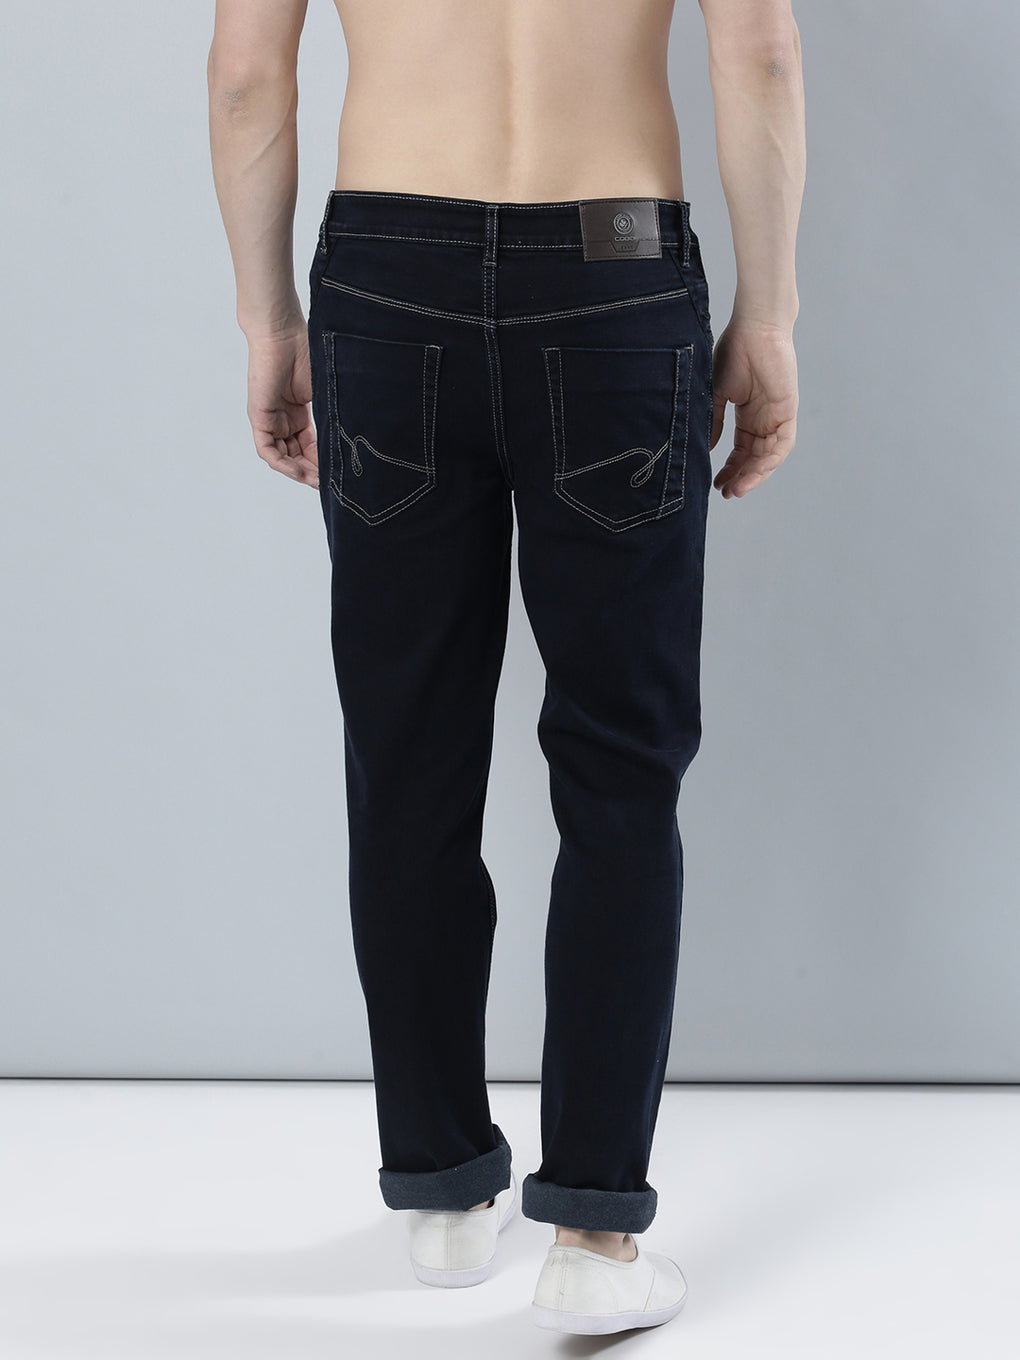 COBB Navy Blue Solid Slim Fit Jeans